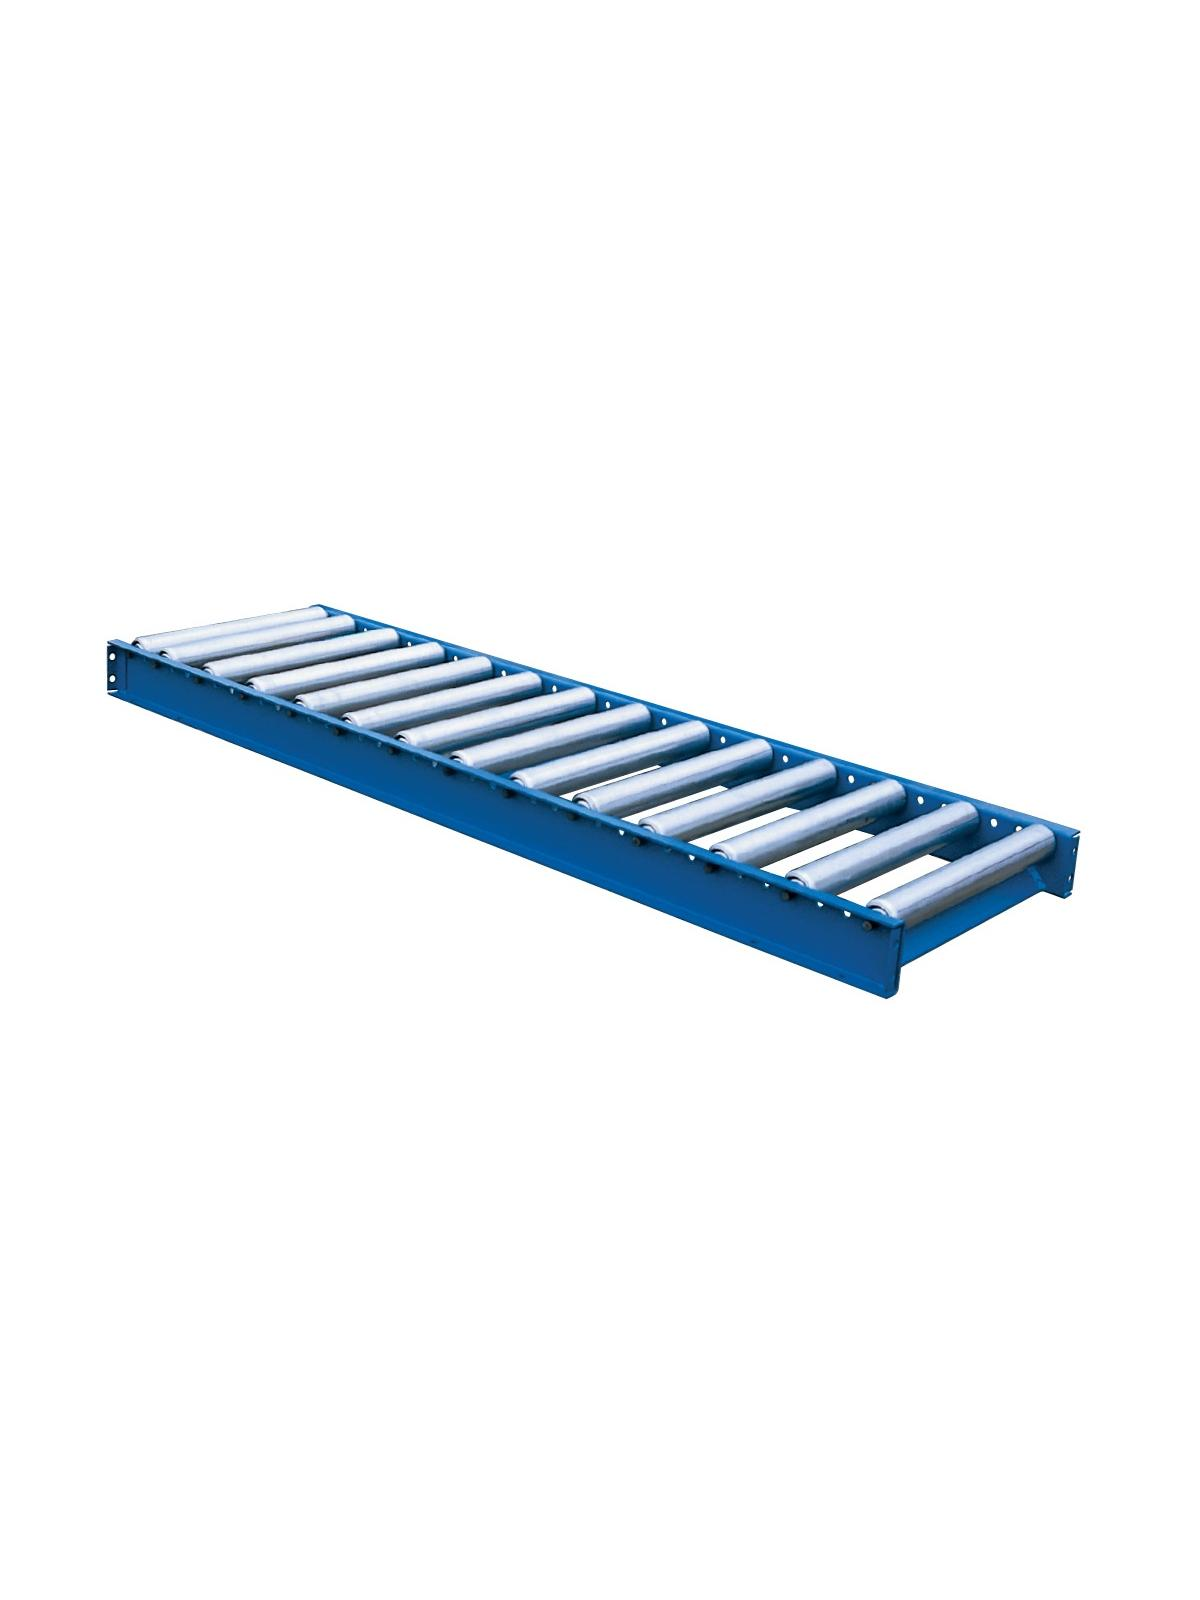 Heavy Duty Roller Conveyor At Nationwide Industrial Supply